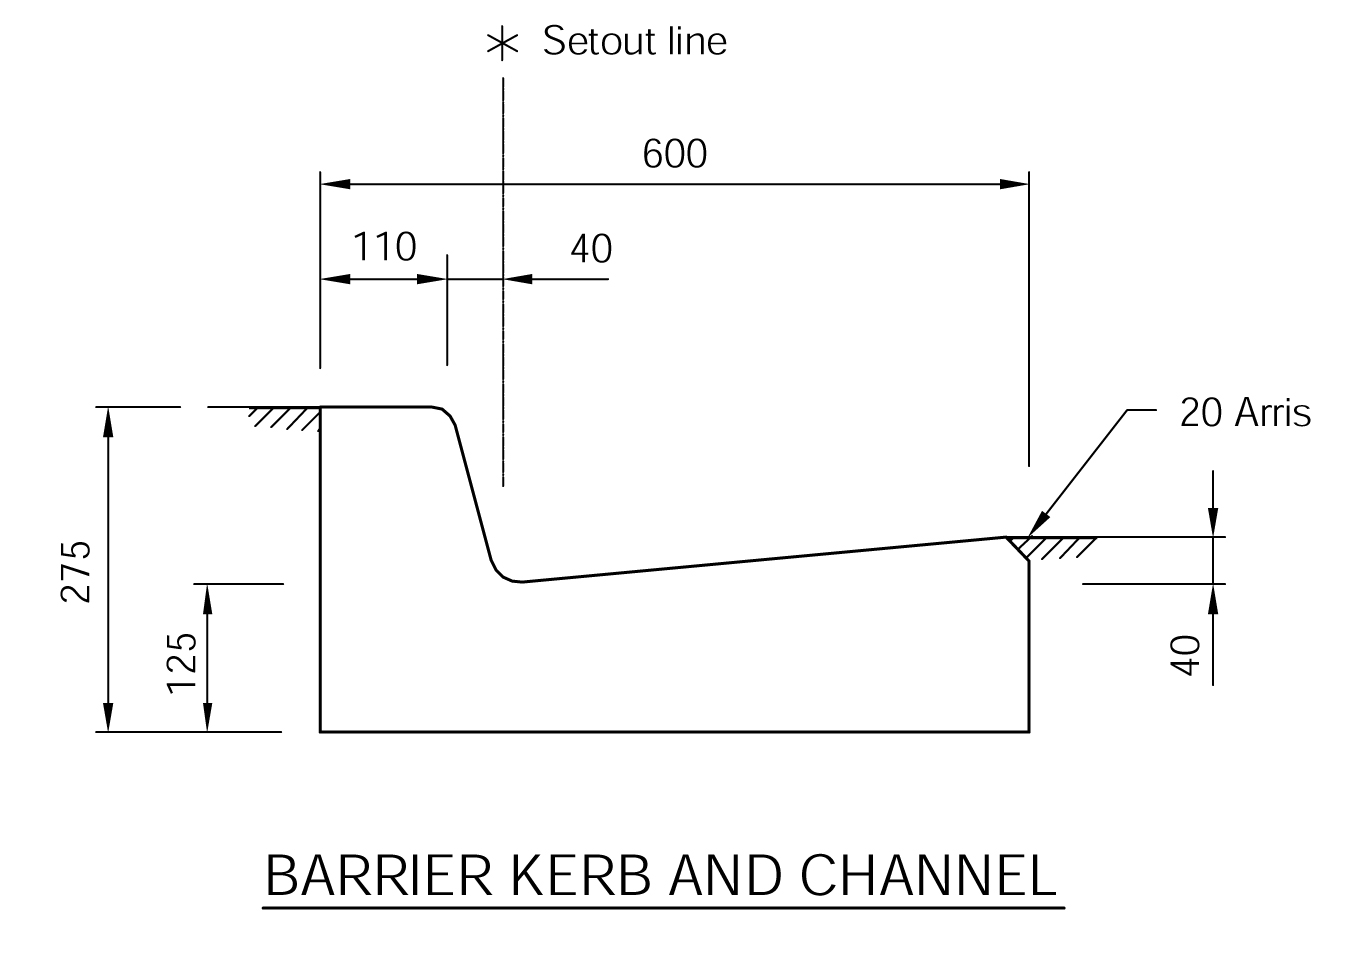 Barrier Kerb and Channel